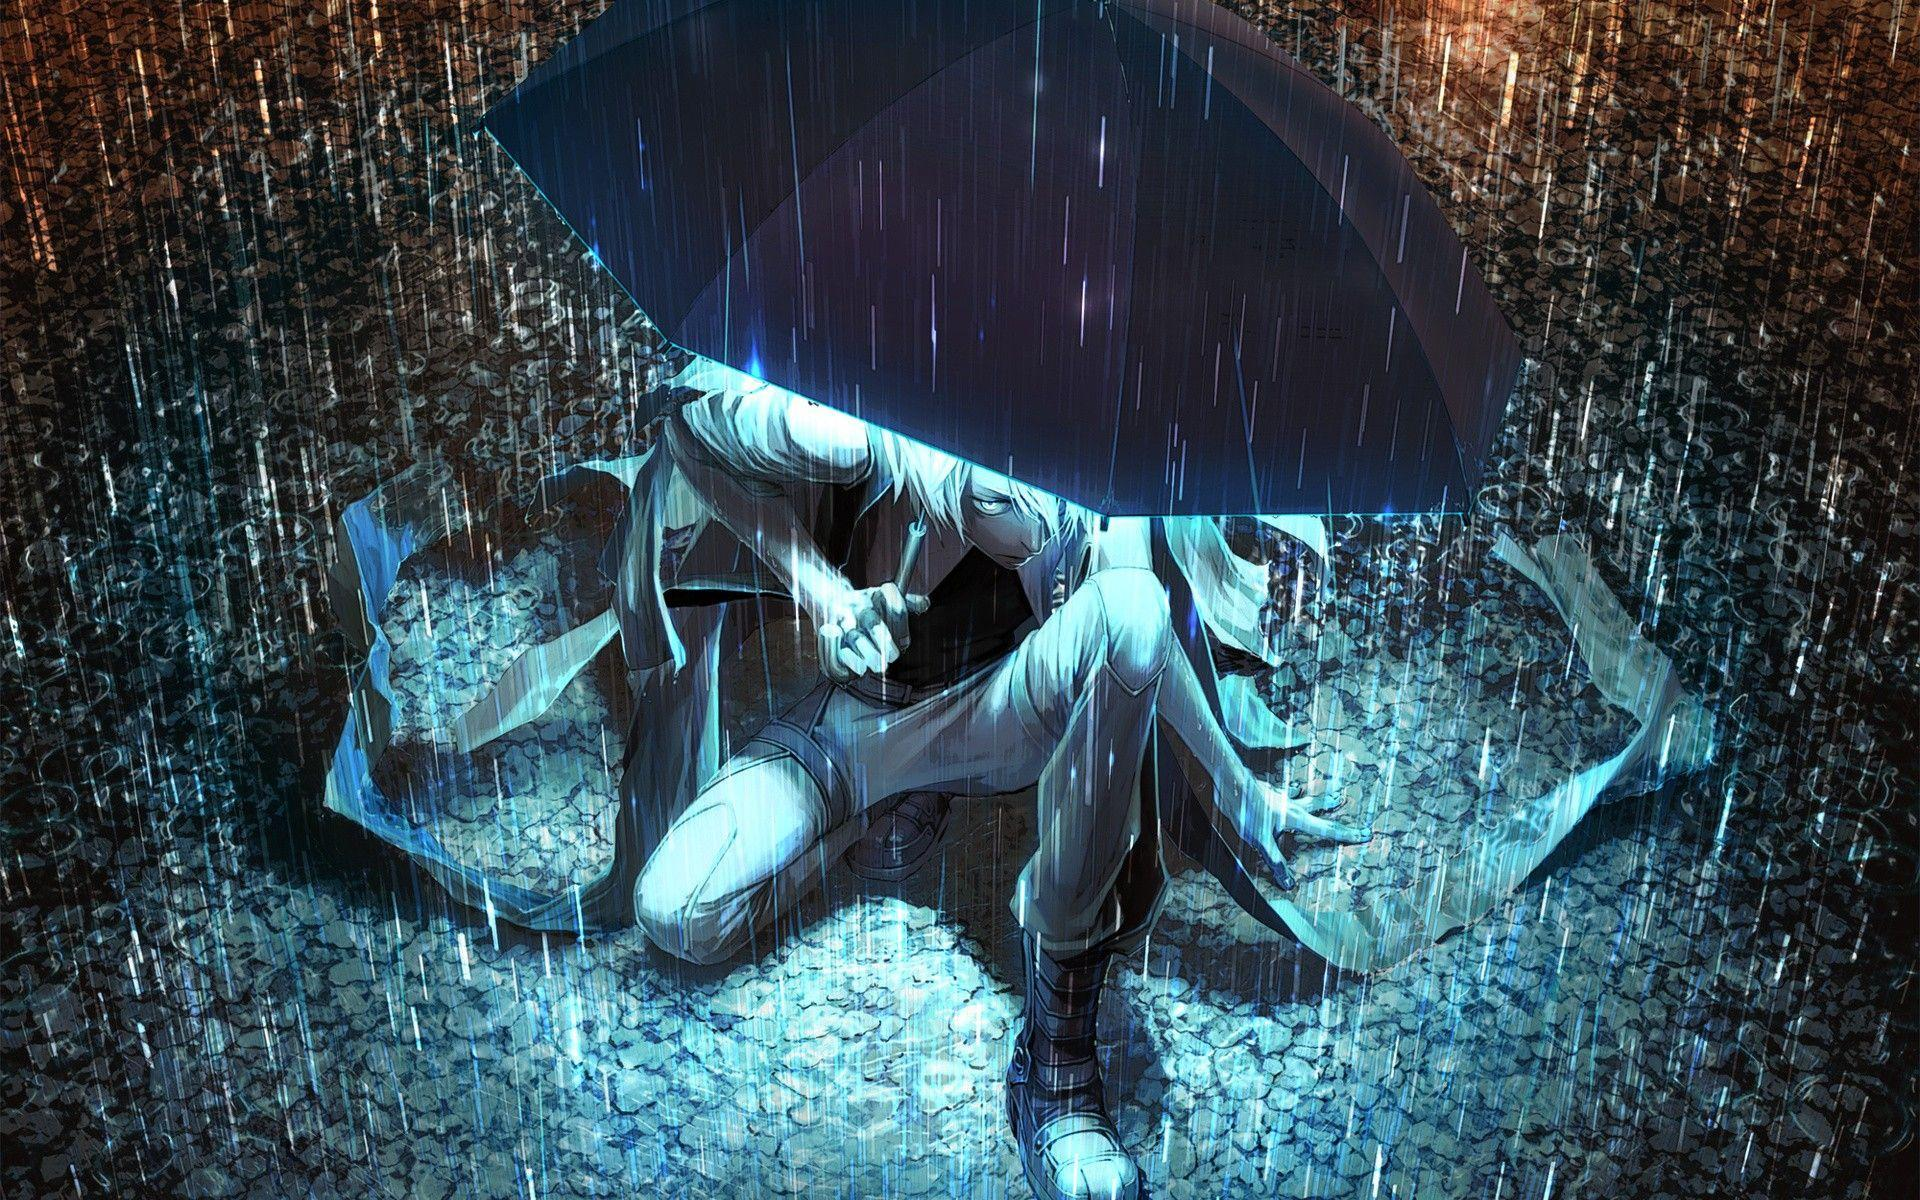 Rain Sad Anime Wallpapers Top Free Rain Sad Anime